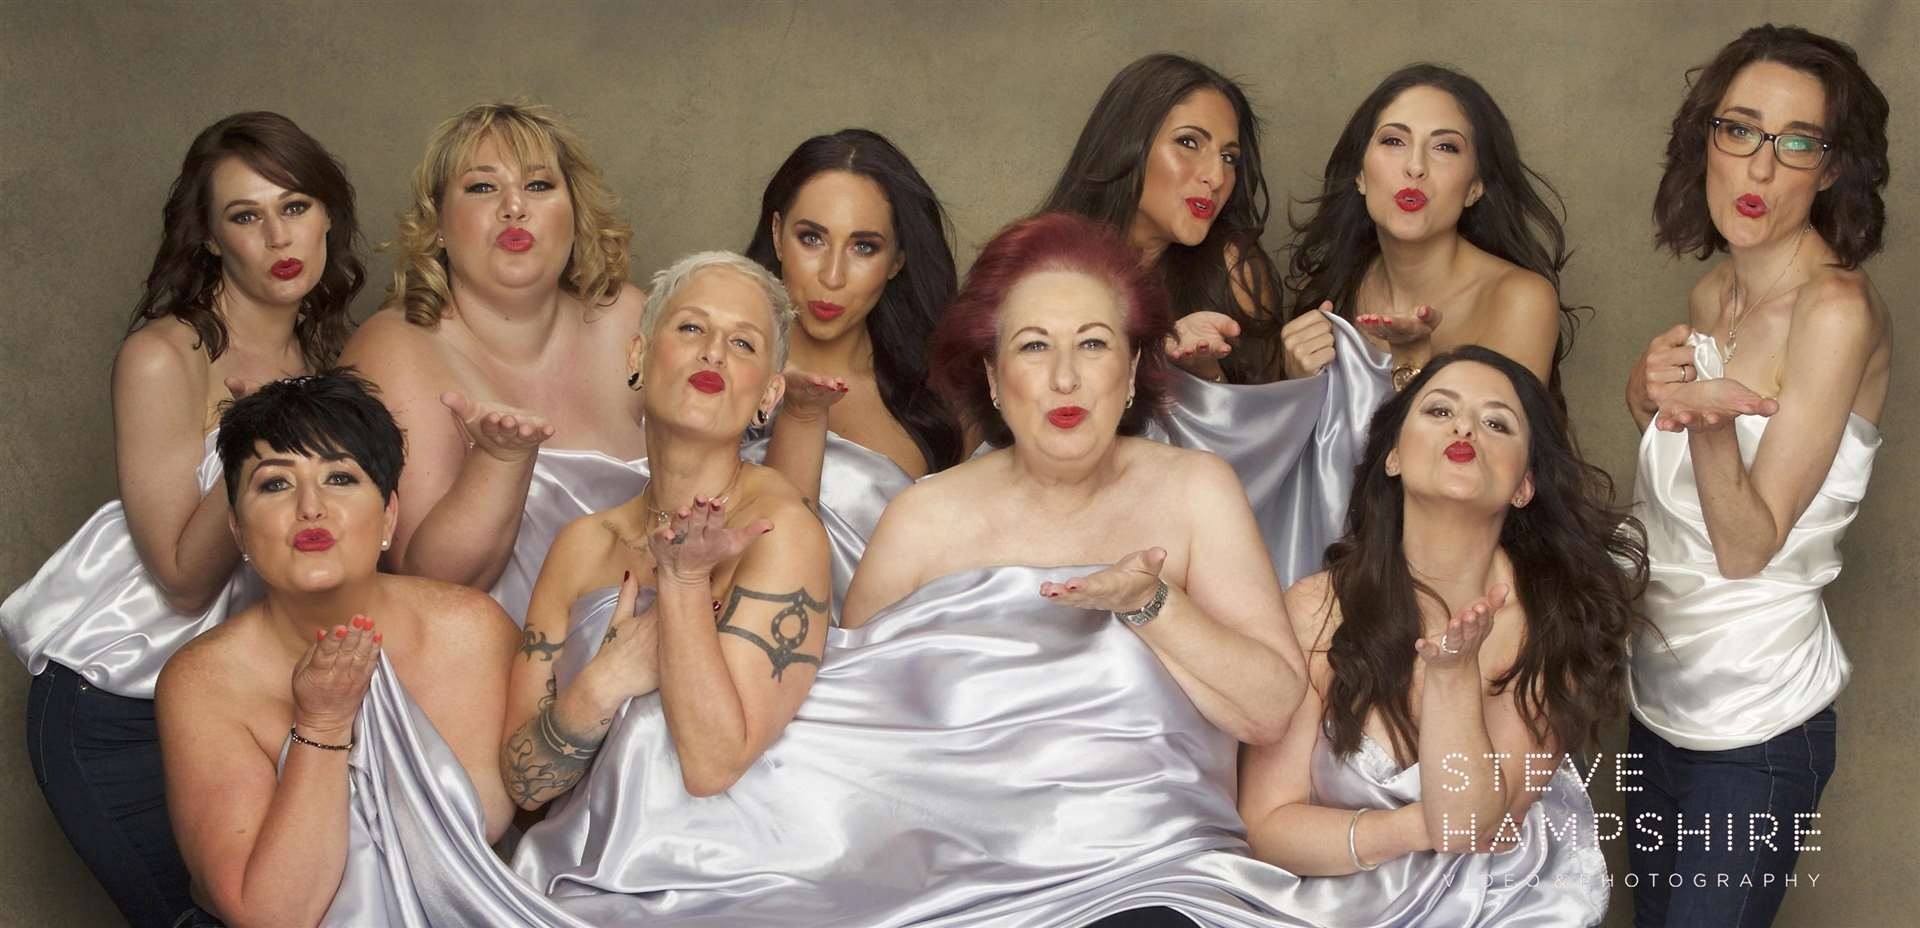 The 10 women who took part in the shoot. Picture: SteveHampshire Photography (2294532)